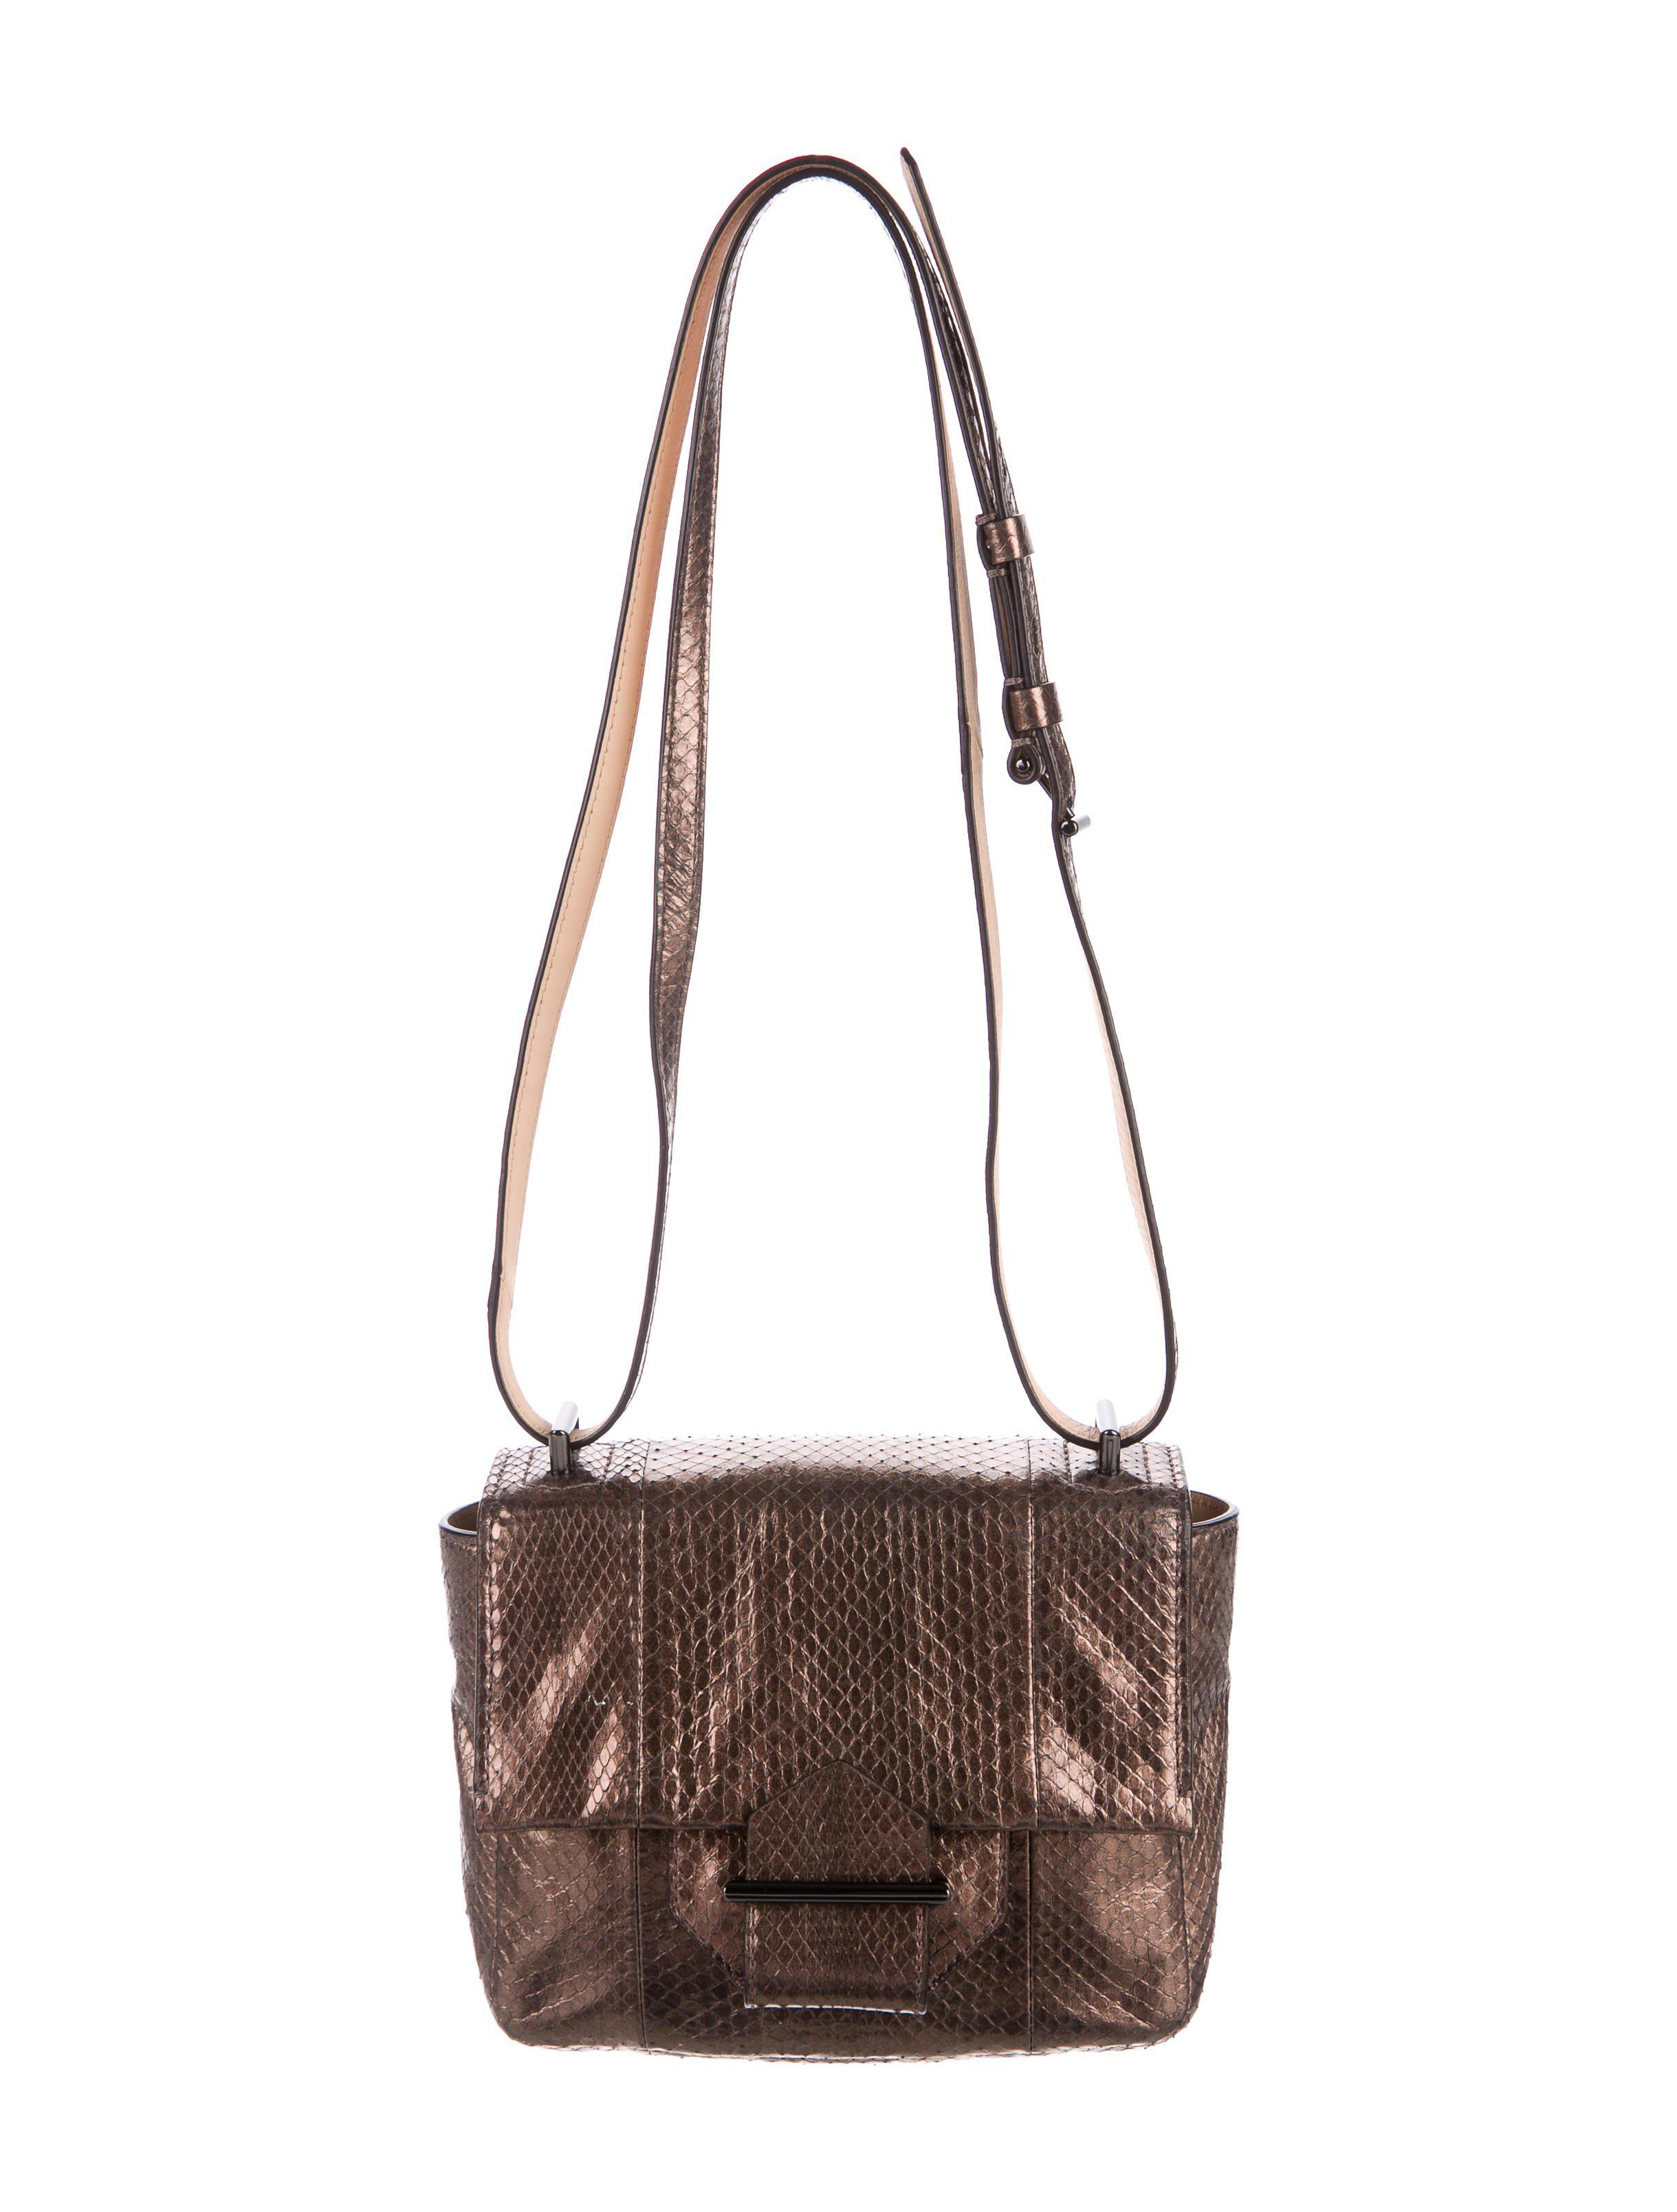 b7efb8eb770d Reed Krakoff. Women s Natural Snakeskin Standard Mini Shoulder Bag Metallic